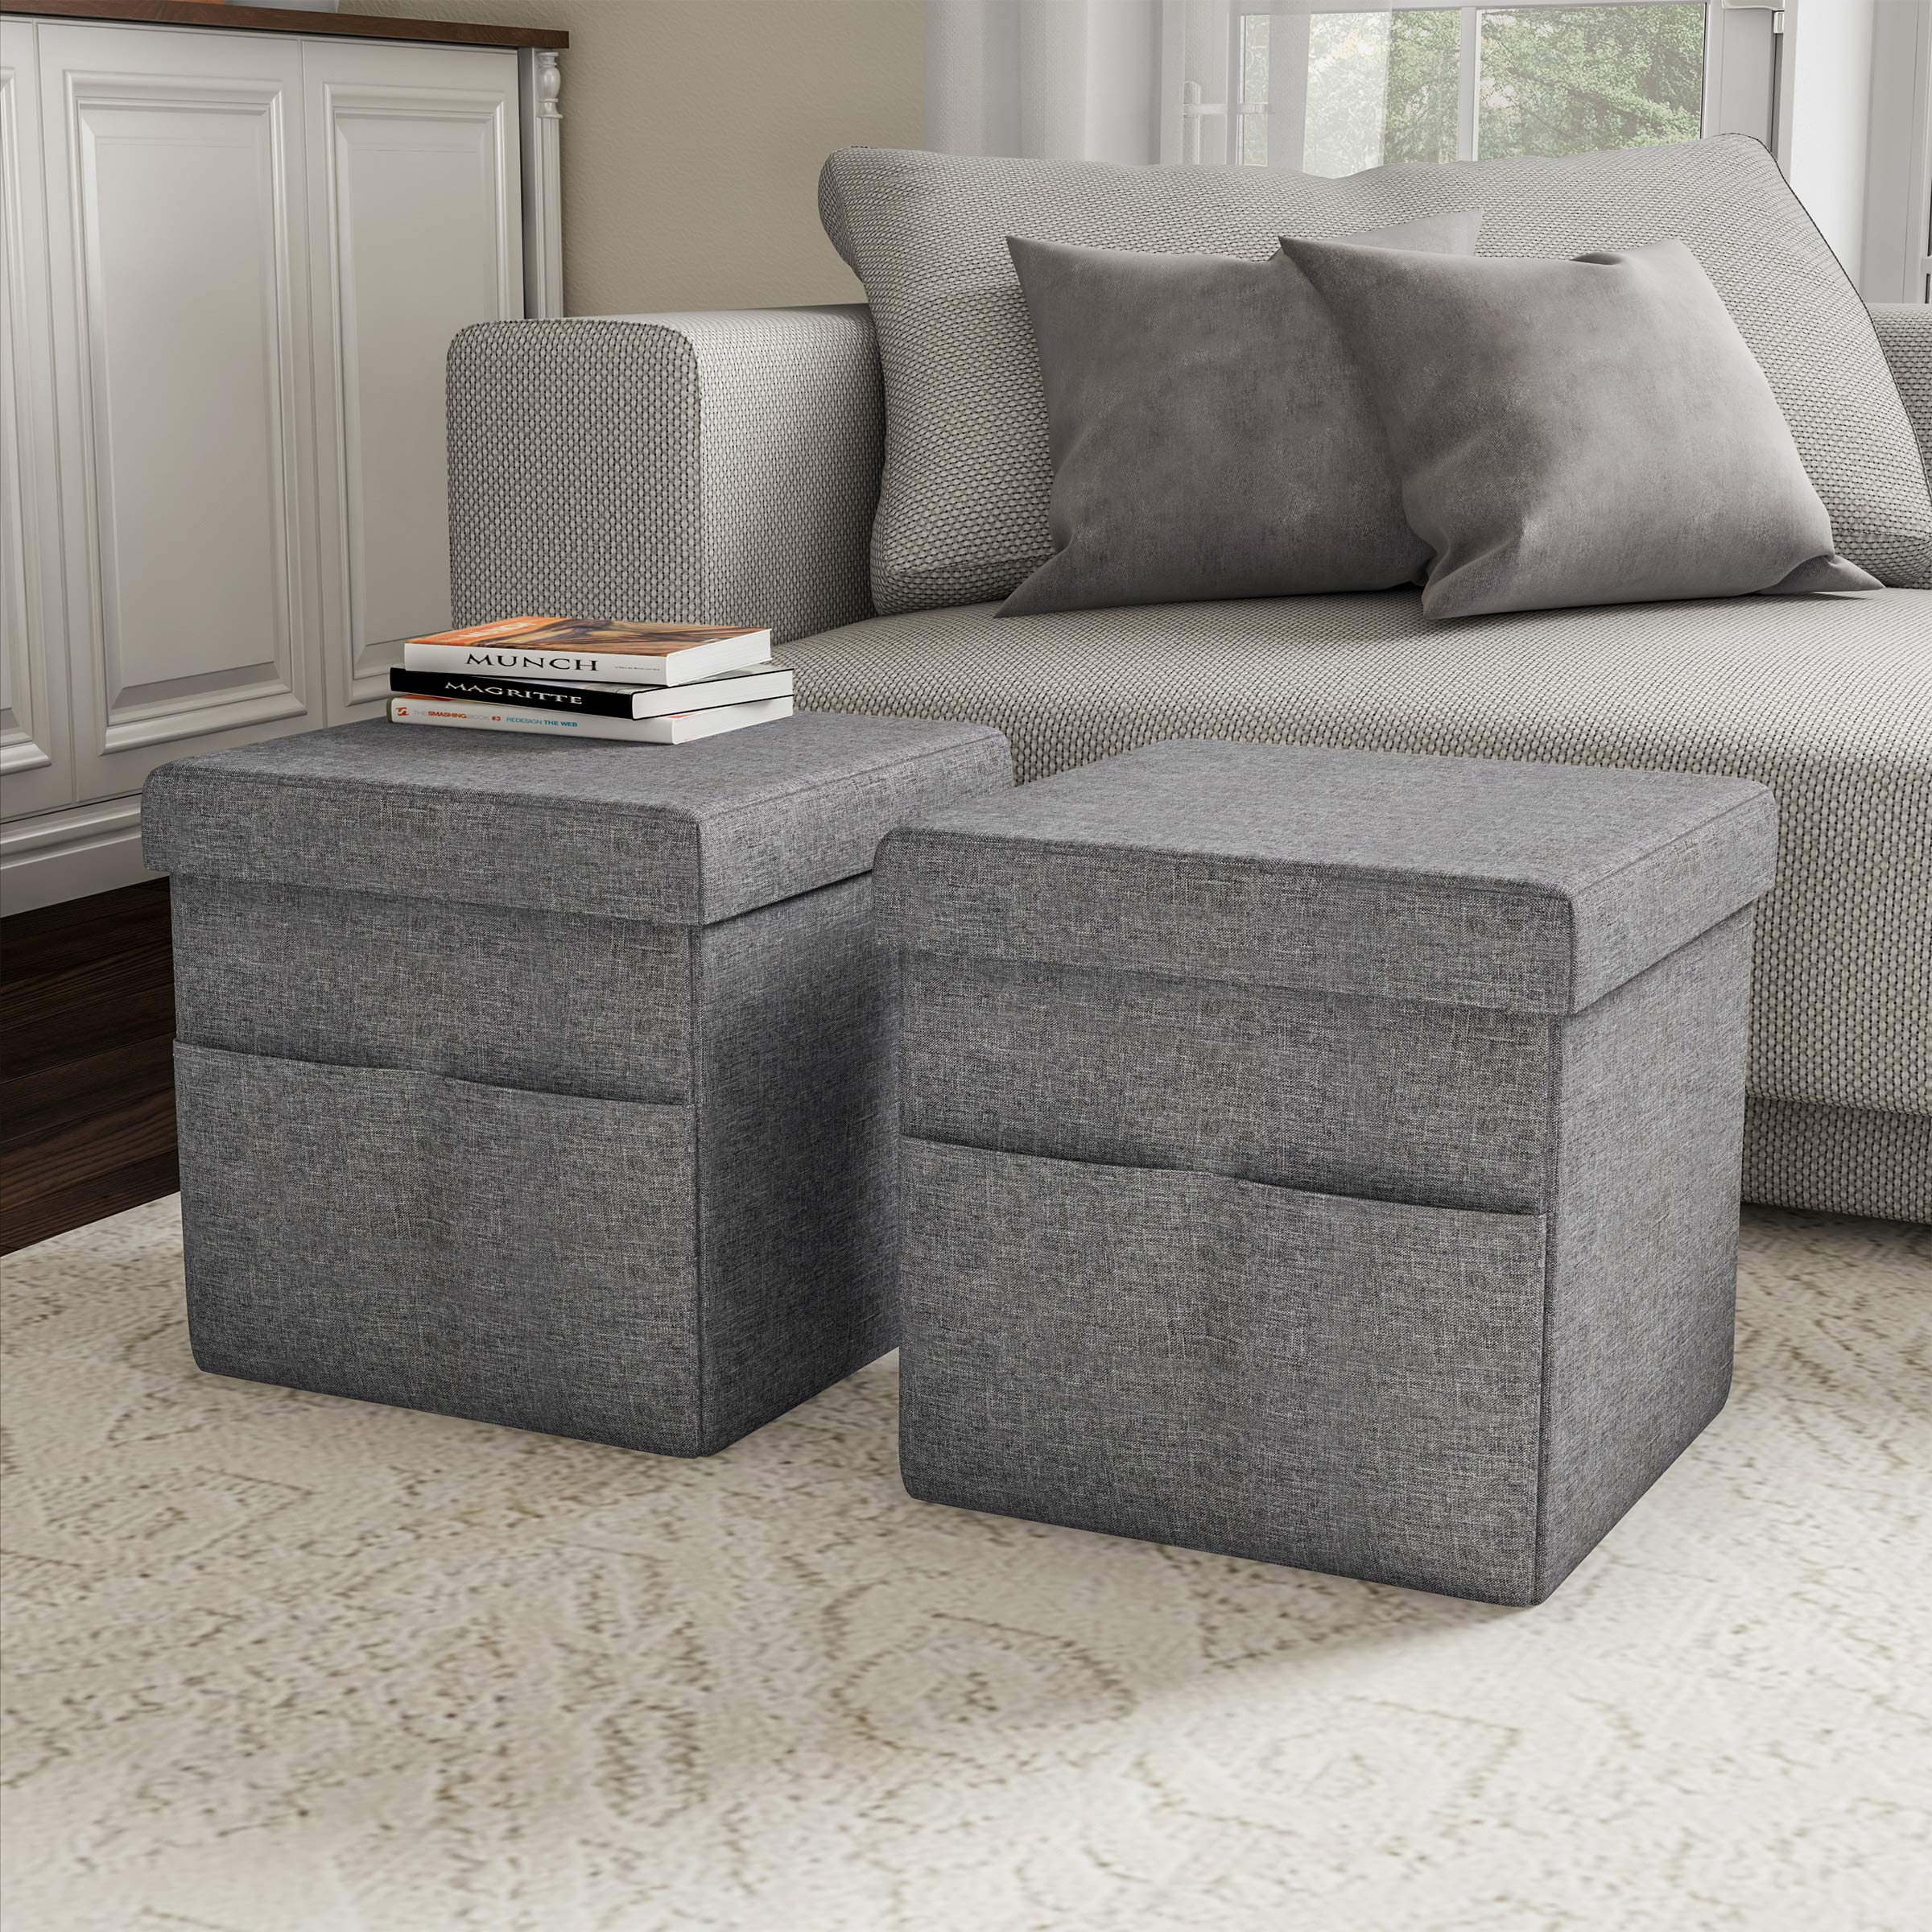 Lavish Home 80-FOTT-1 Foldable Storage Cube Ottoman with Pockets - Multipurpose Footrest Organizer for Bedroom, Living Room, Dorm or RV (Pair, Charcoal Gray), by Lavish Home